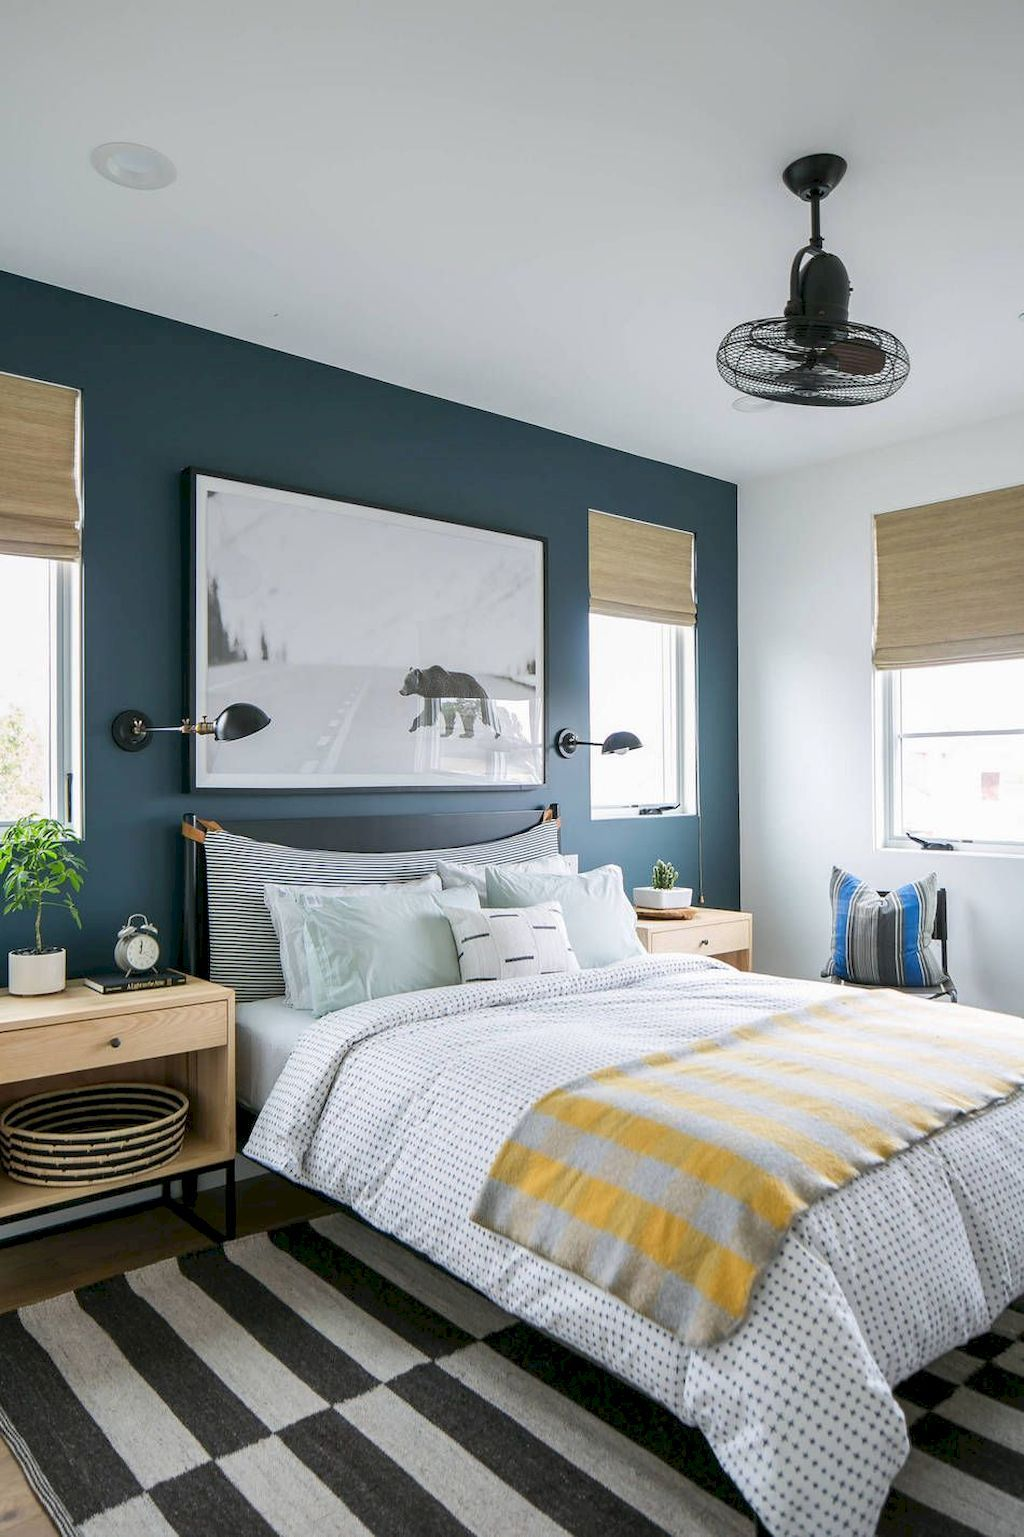 Astonishing Small Bed Room Designs Work Wonders In Your Bed Room At The Moment Master Bedroom Interior Design Feature Wall Bedroom Remodel Bedroom